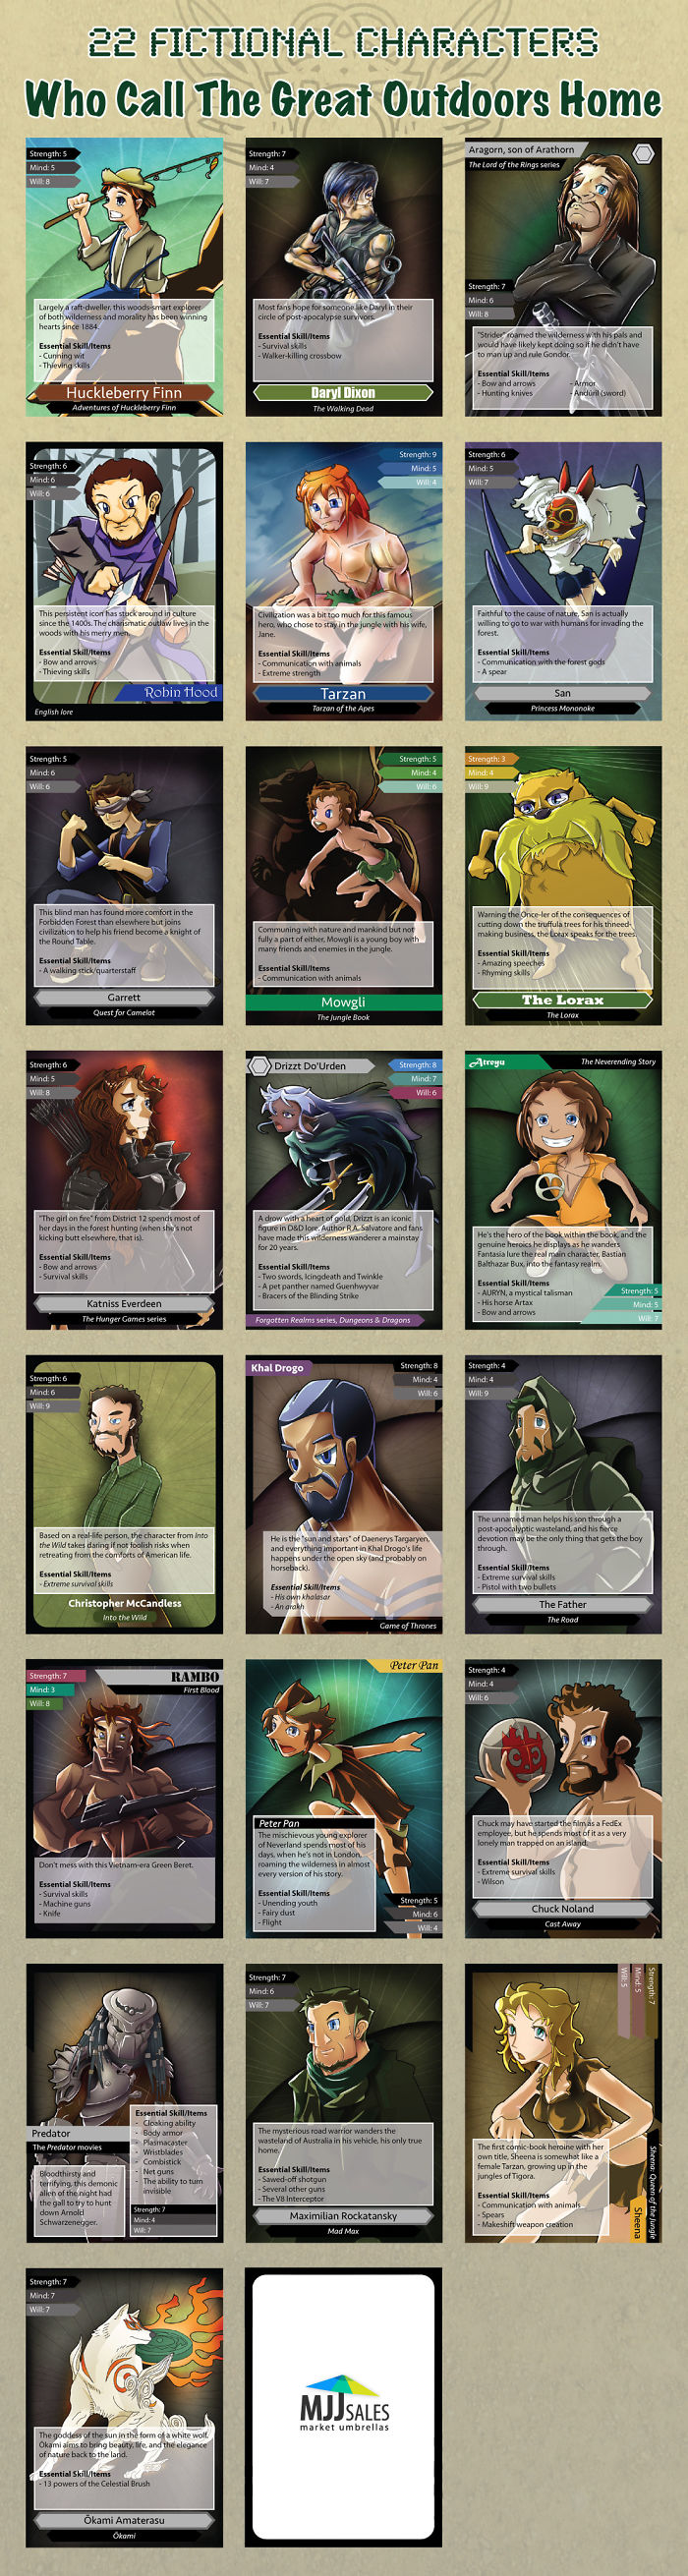 Magic: The Gathering Meeting Your Favorite Tv Shows And Movies